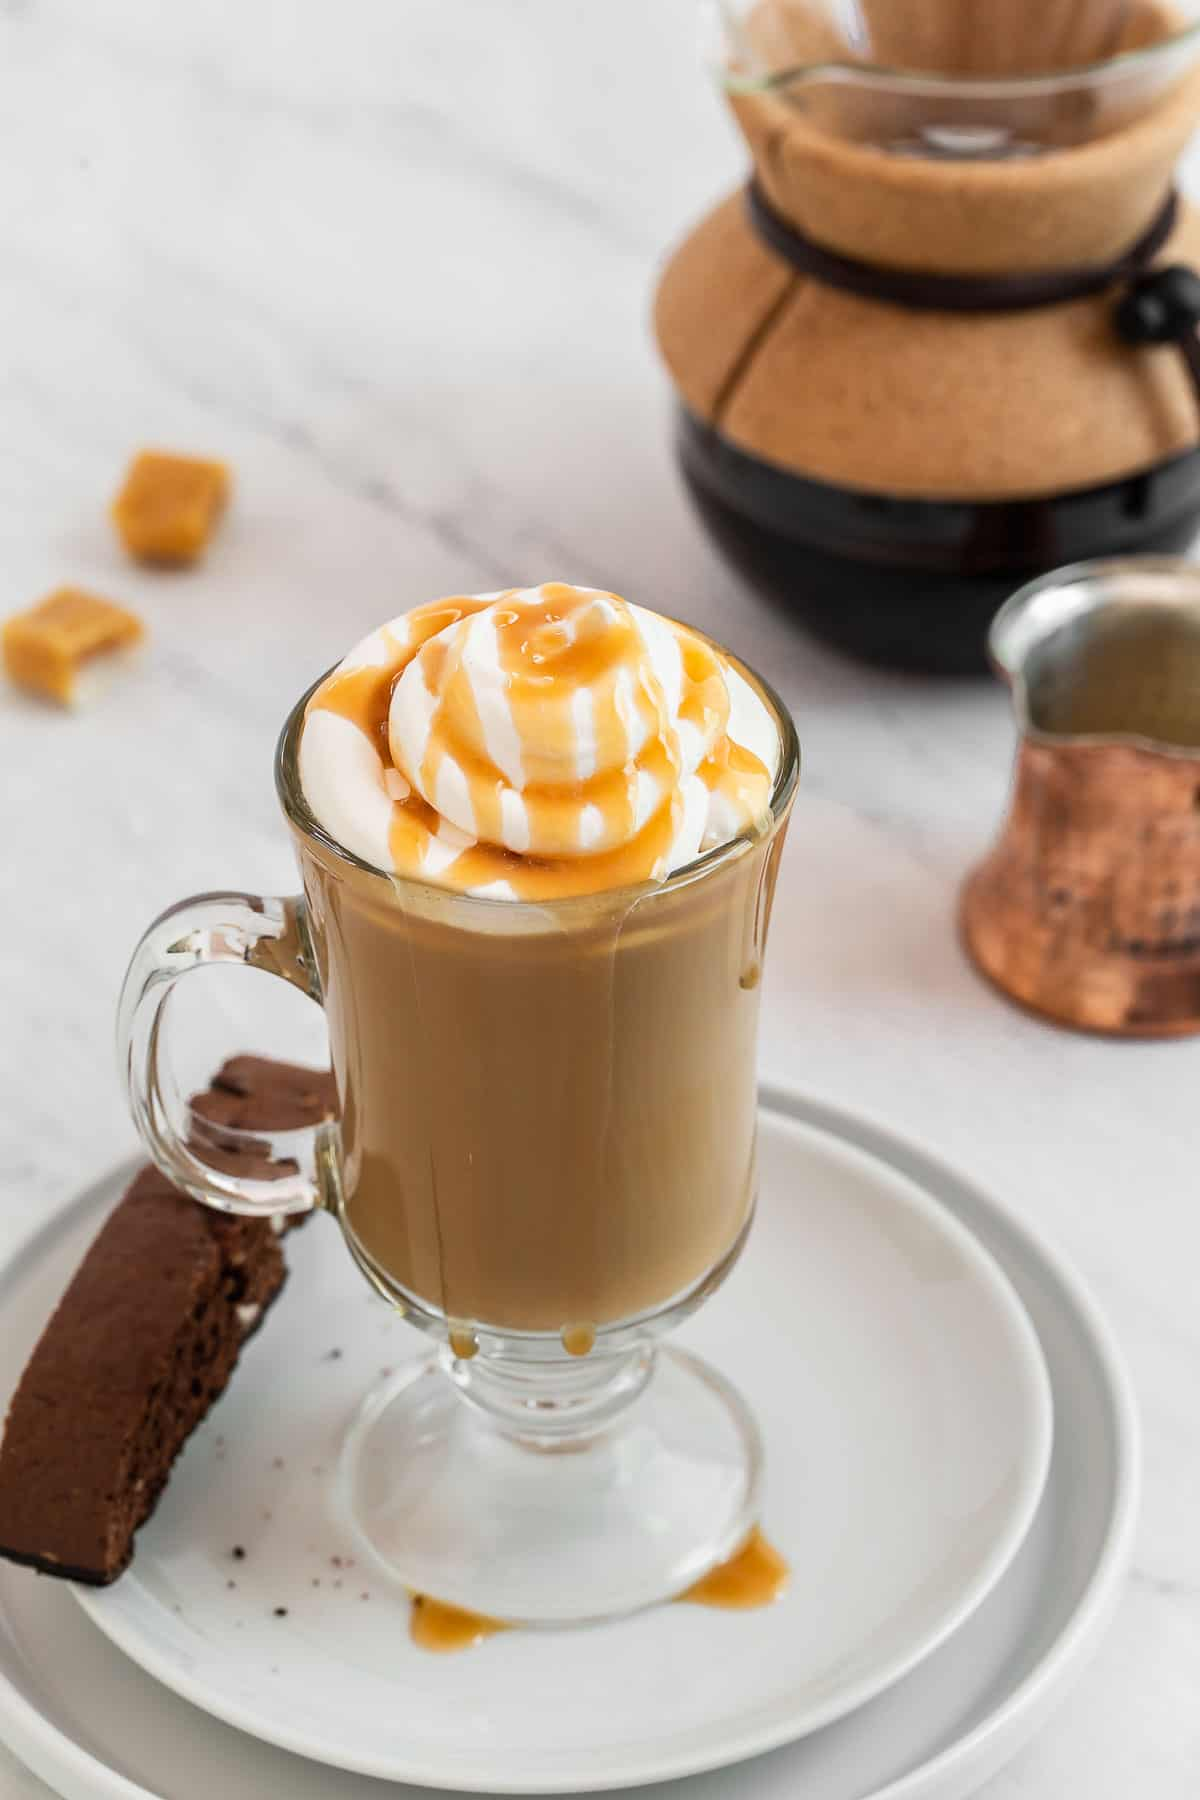 Caramel latte garnished with whipped cream and caramel drizzle.